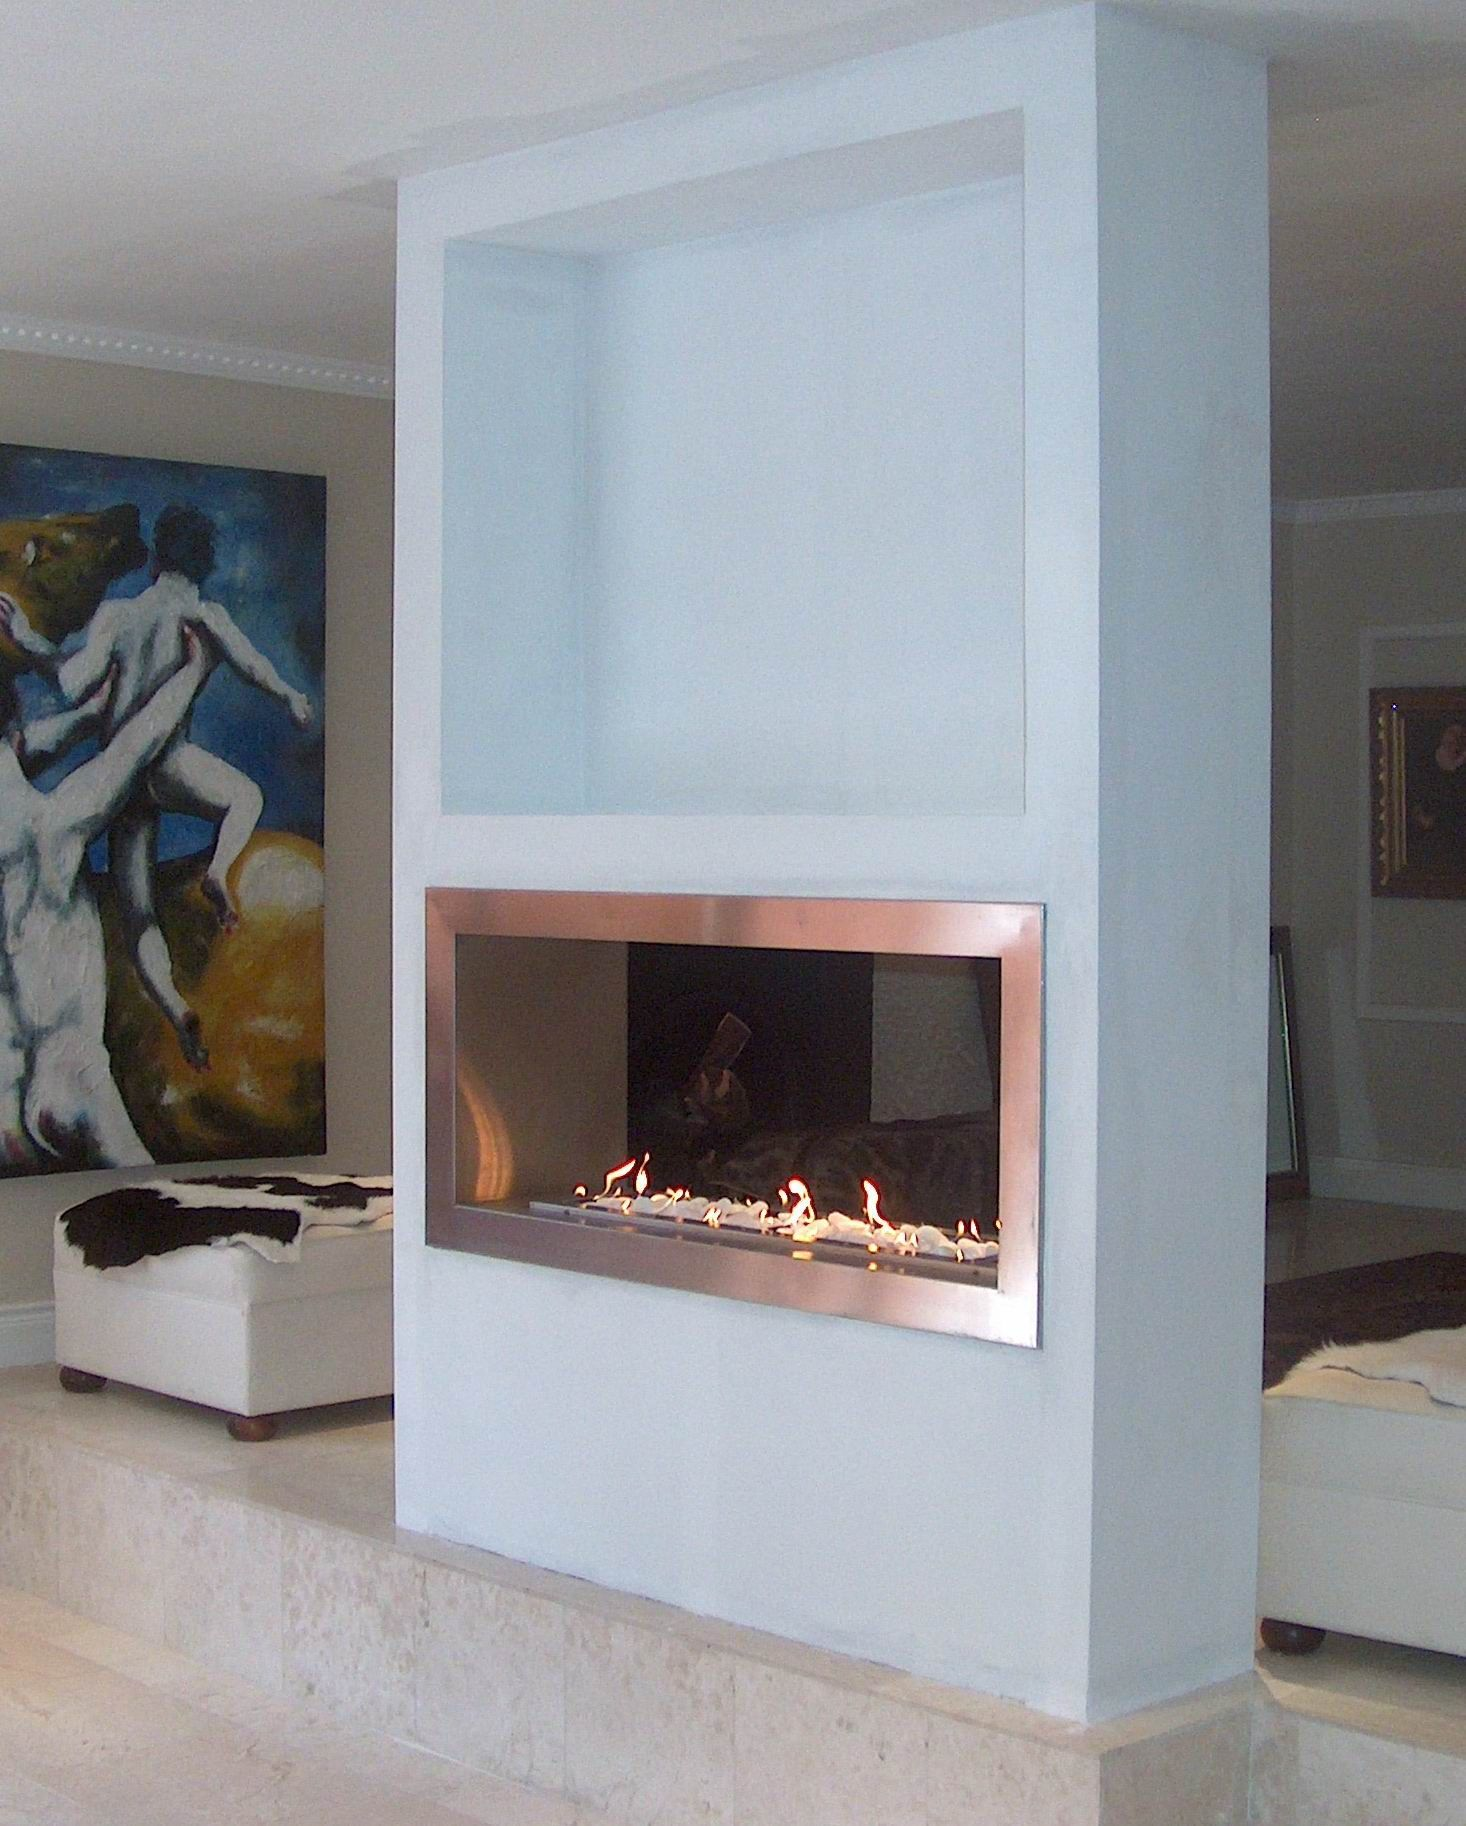 Pin By Lorenda Cochran On My House Glass Fireplace Double Sided